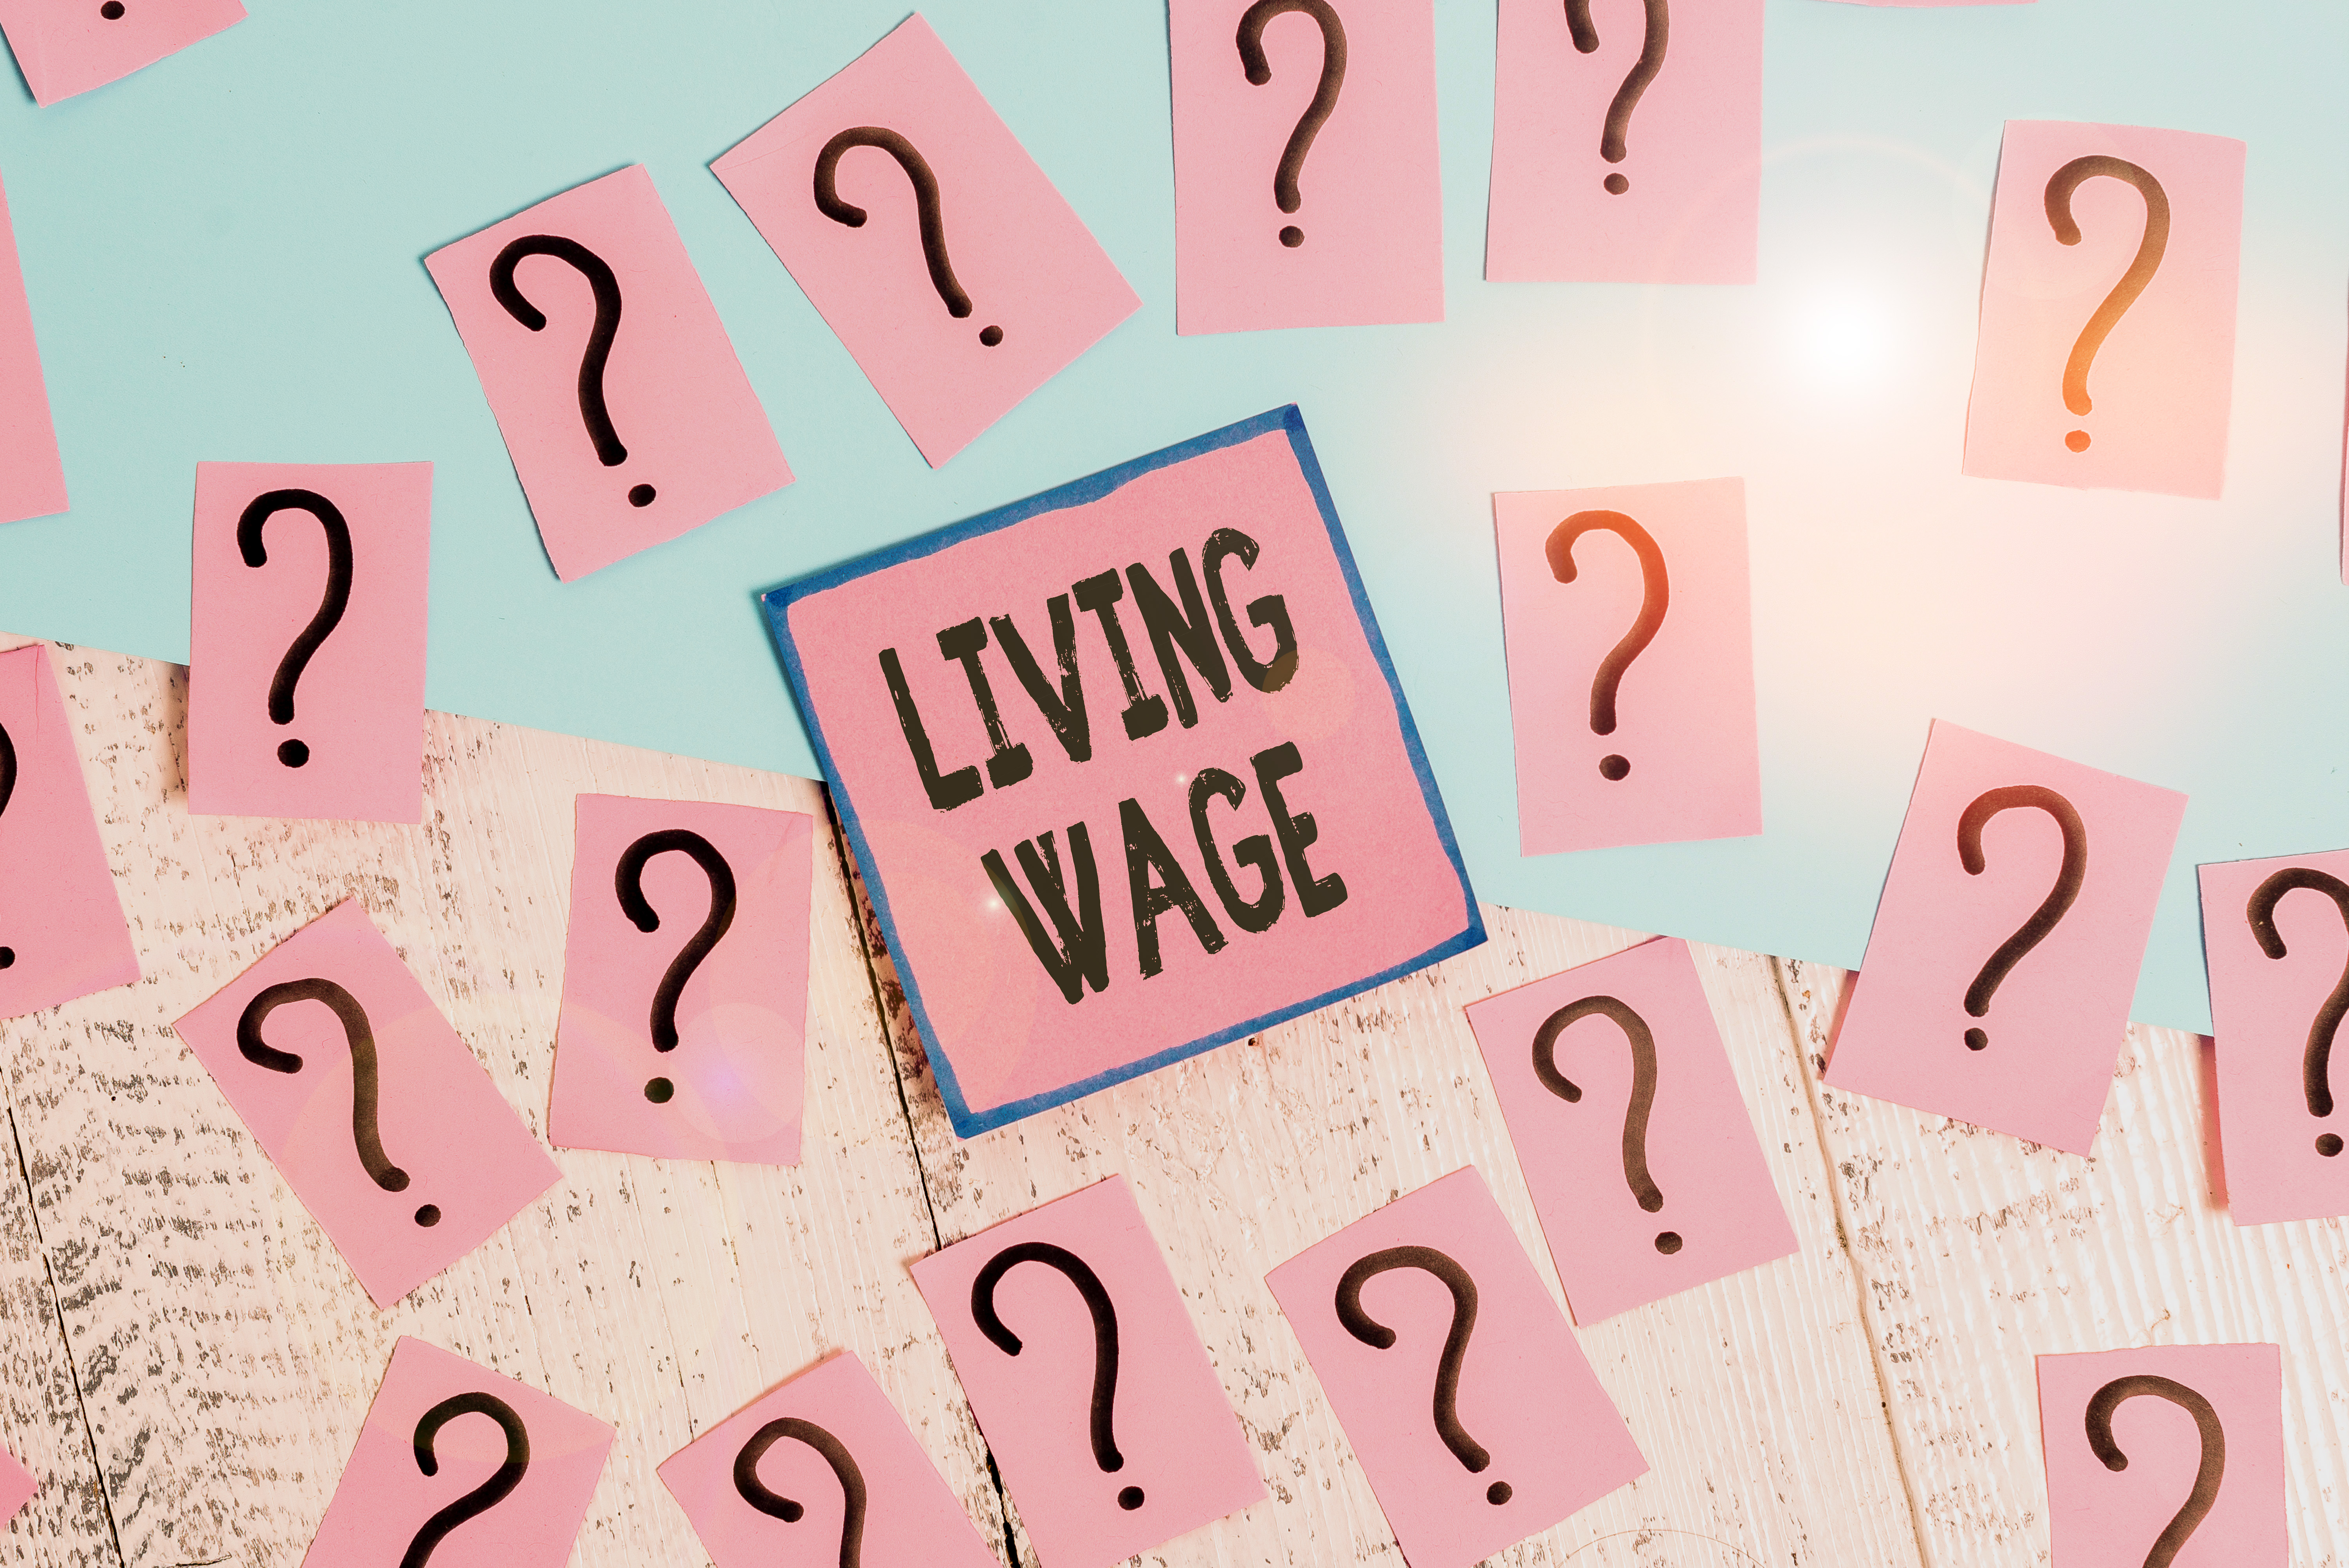 Are you paying your carer enough? The latest National Living Wage rates